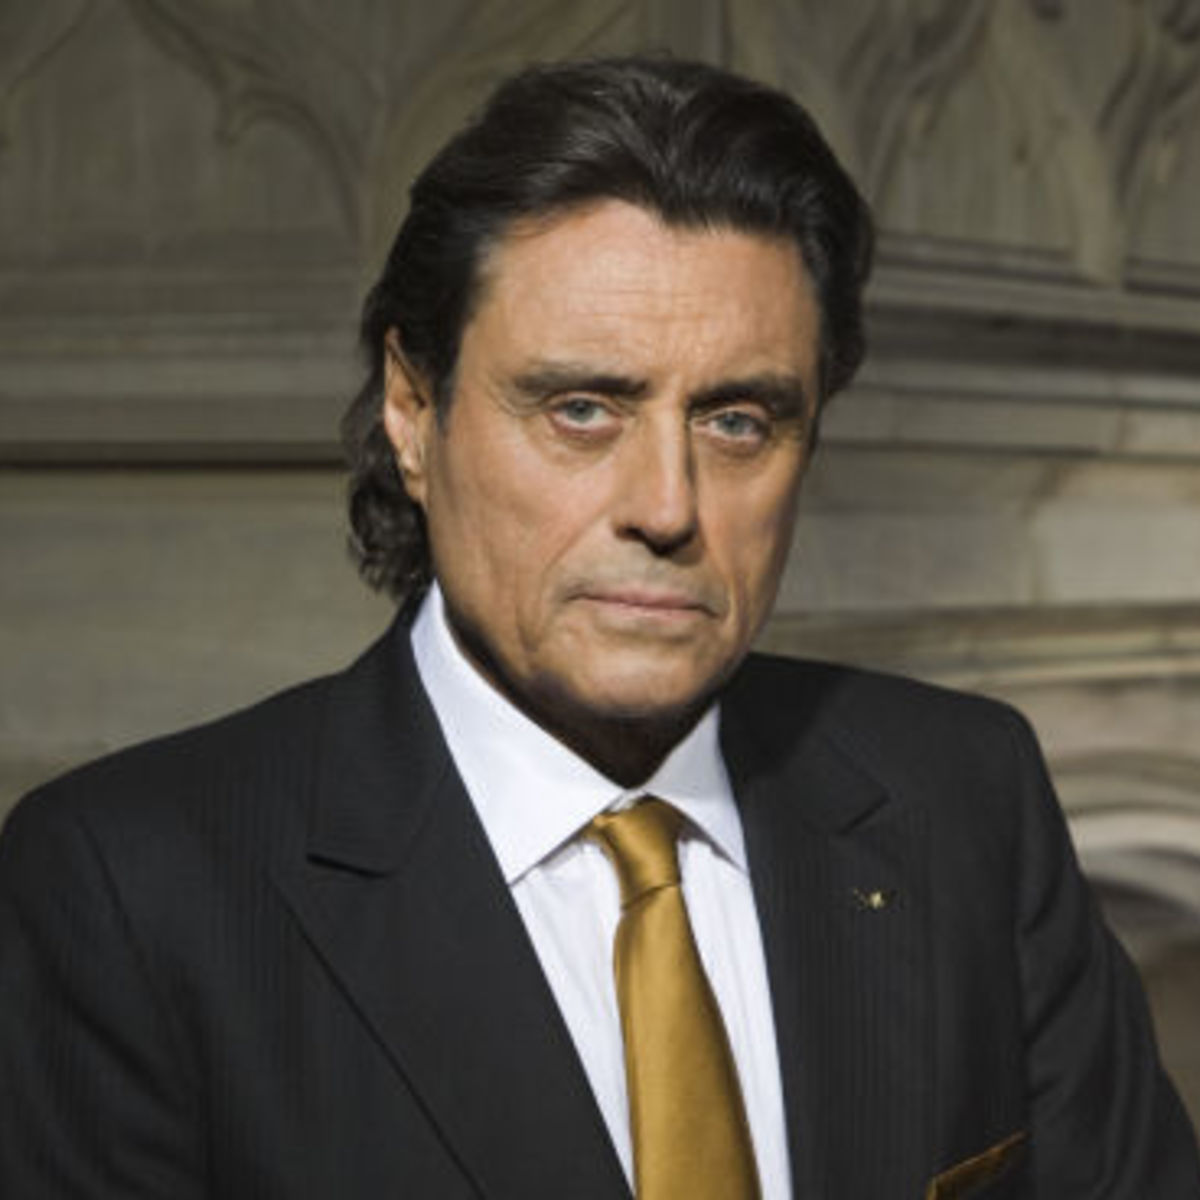 IanMcShane_kings_0.jpg